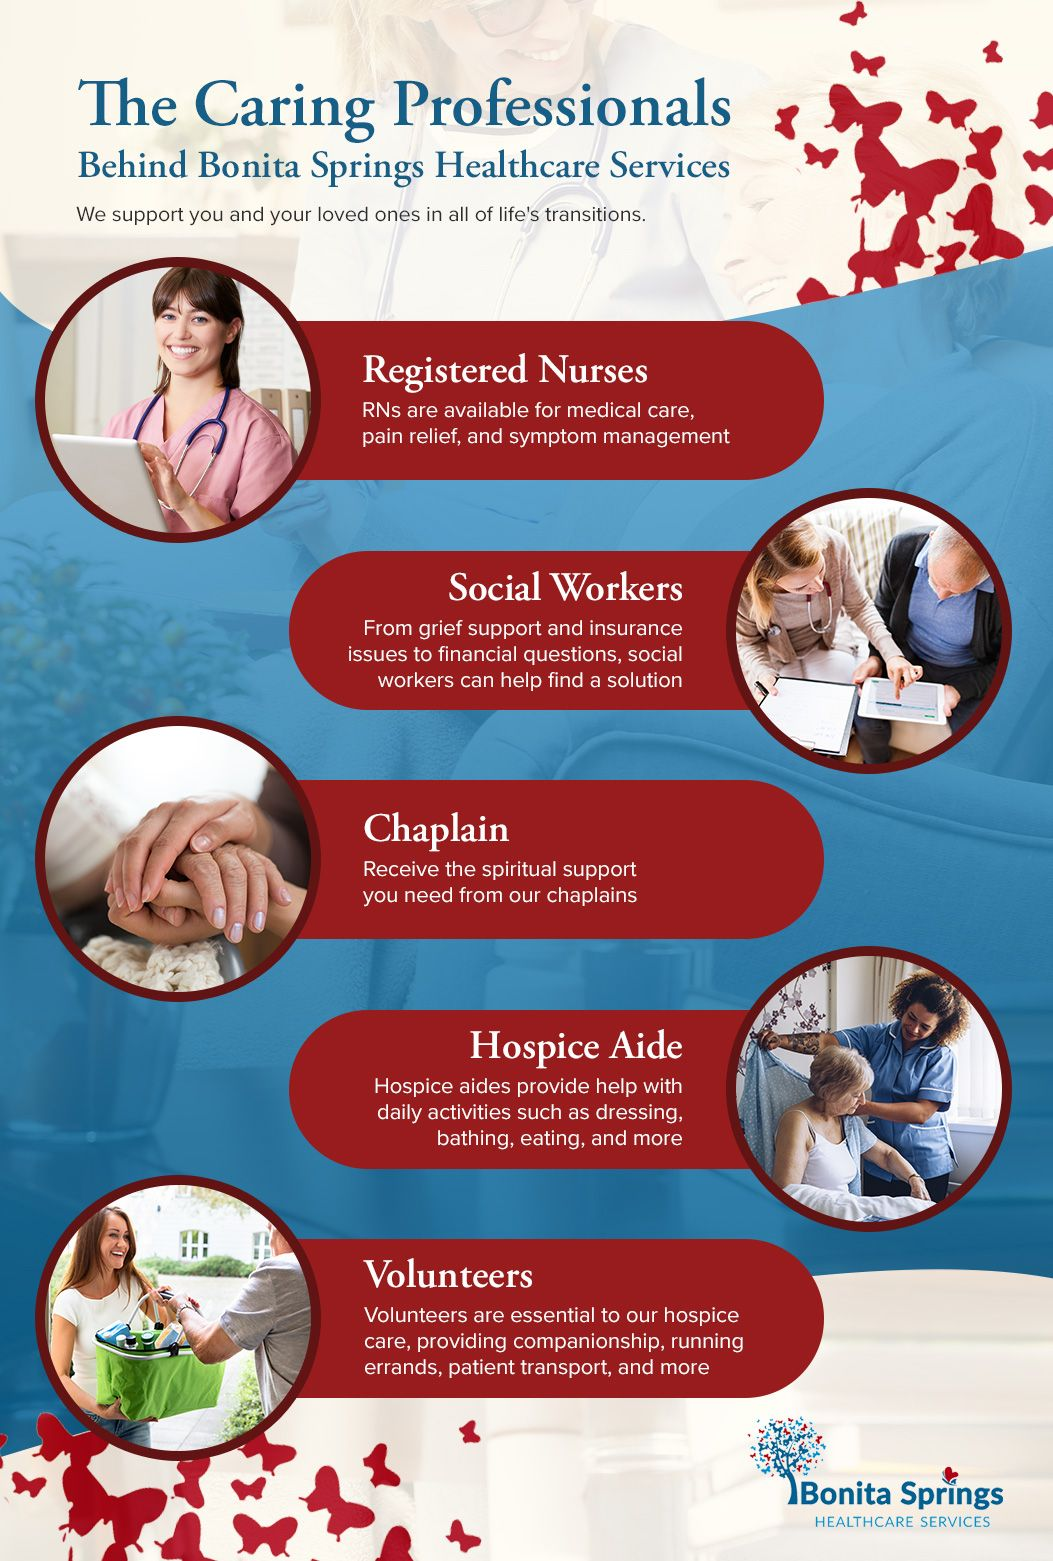 The Caring Professionals Behind Bonita Springs Healthcare Services.jpg